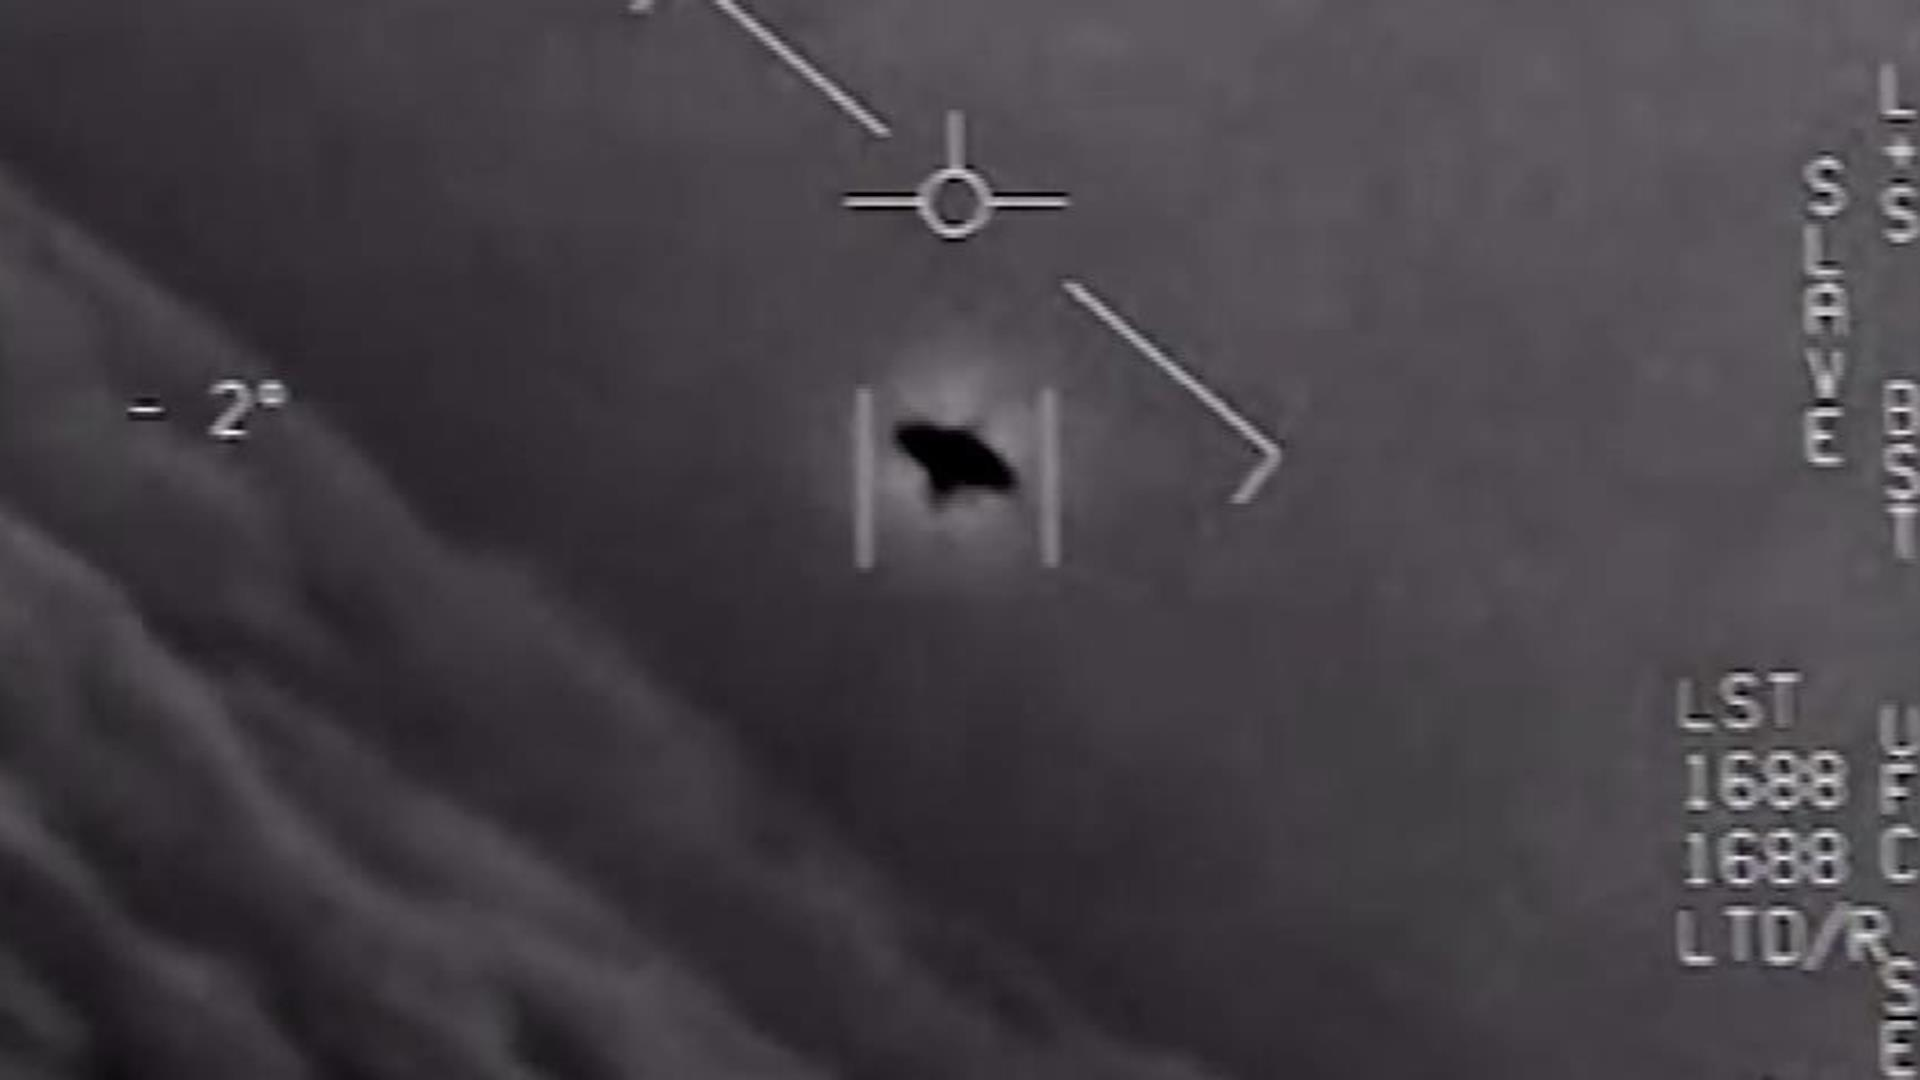 Navy confirms videos did capture UFO sightings, but it calls them by another name